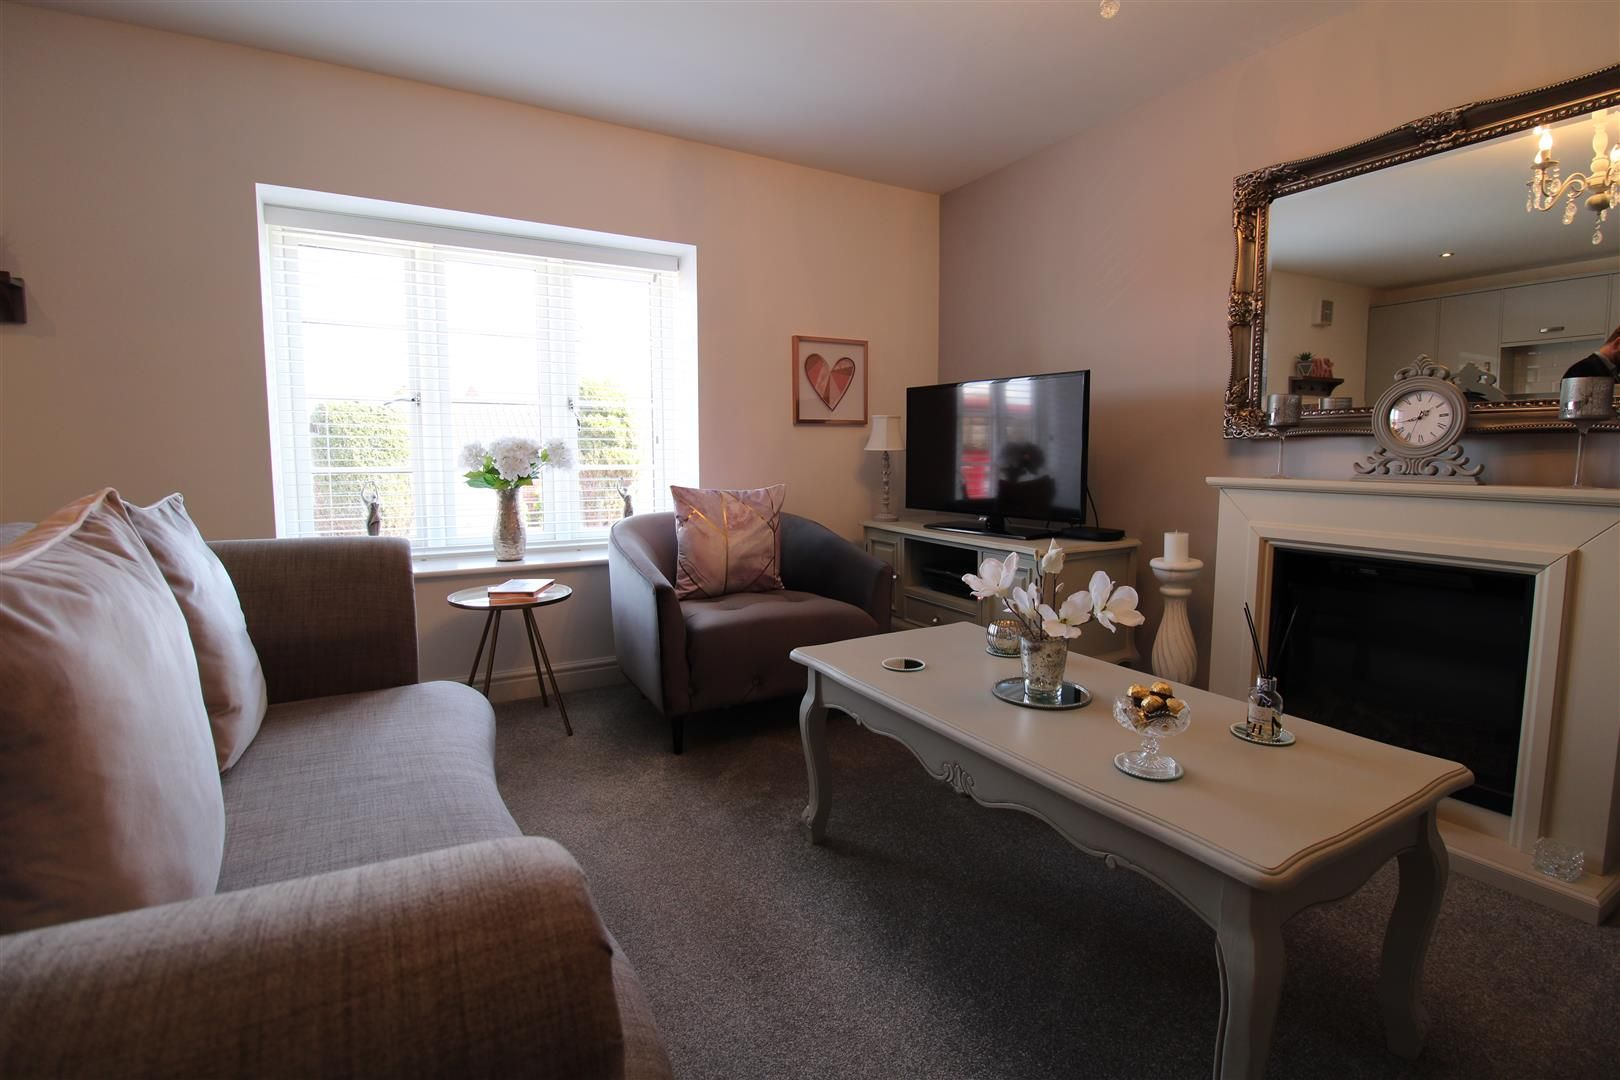 2 bed apartment for sale in Swindon 4